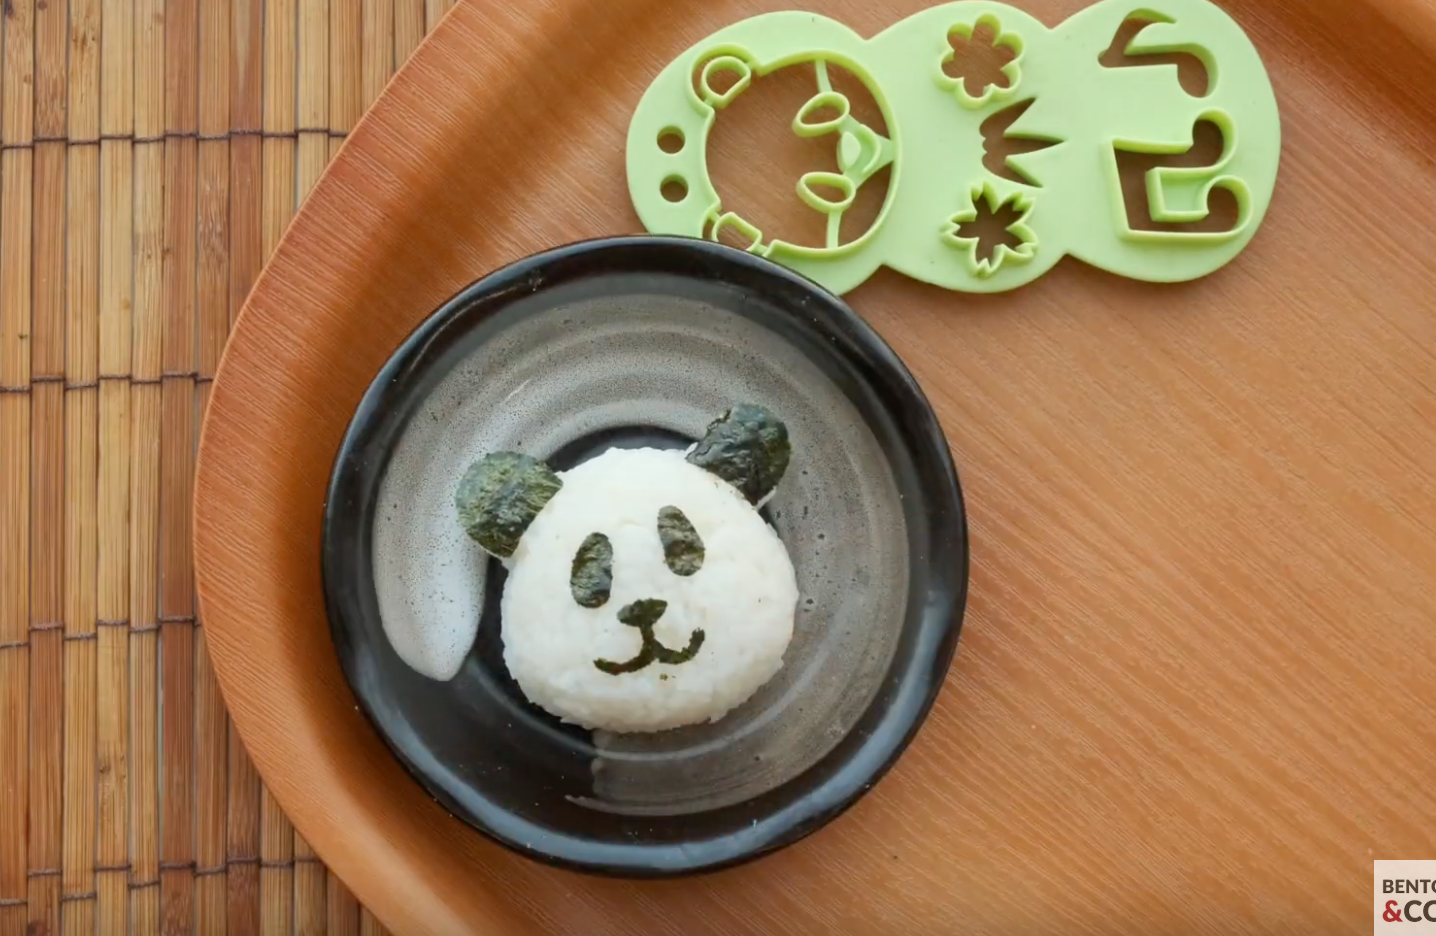 Adorable Rice Molds!